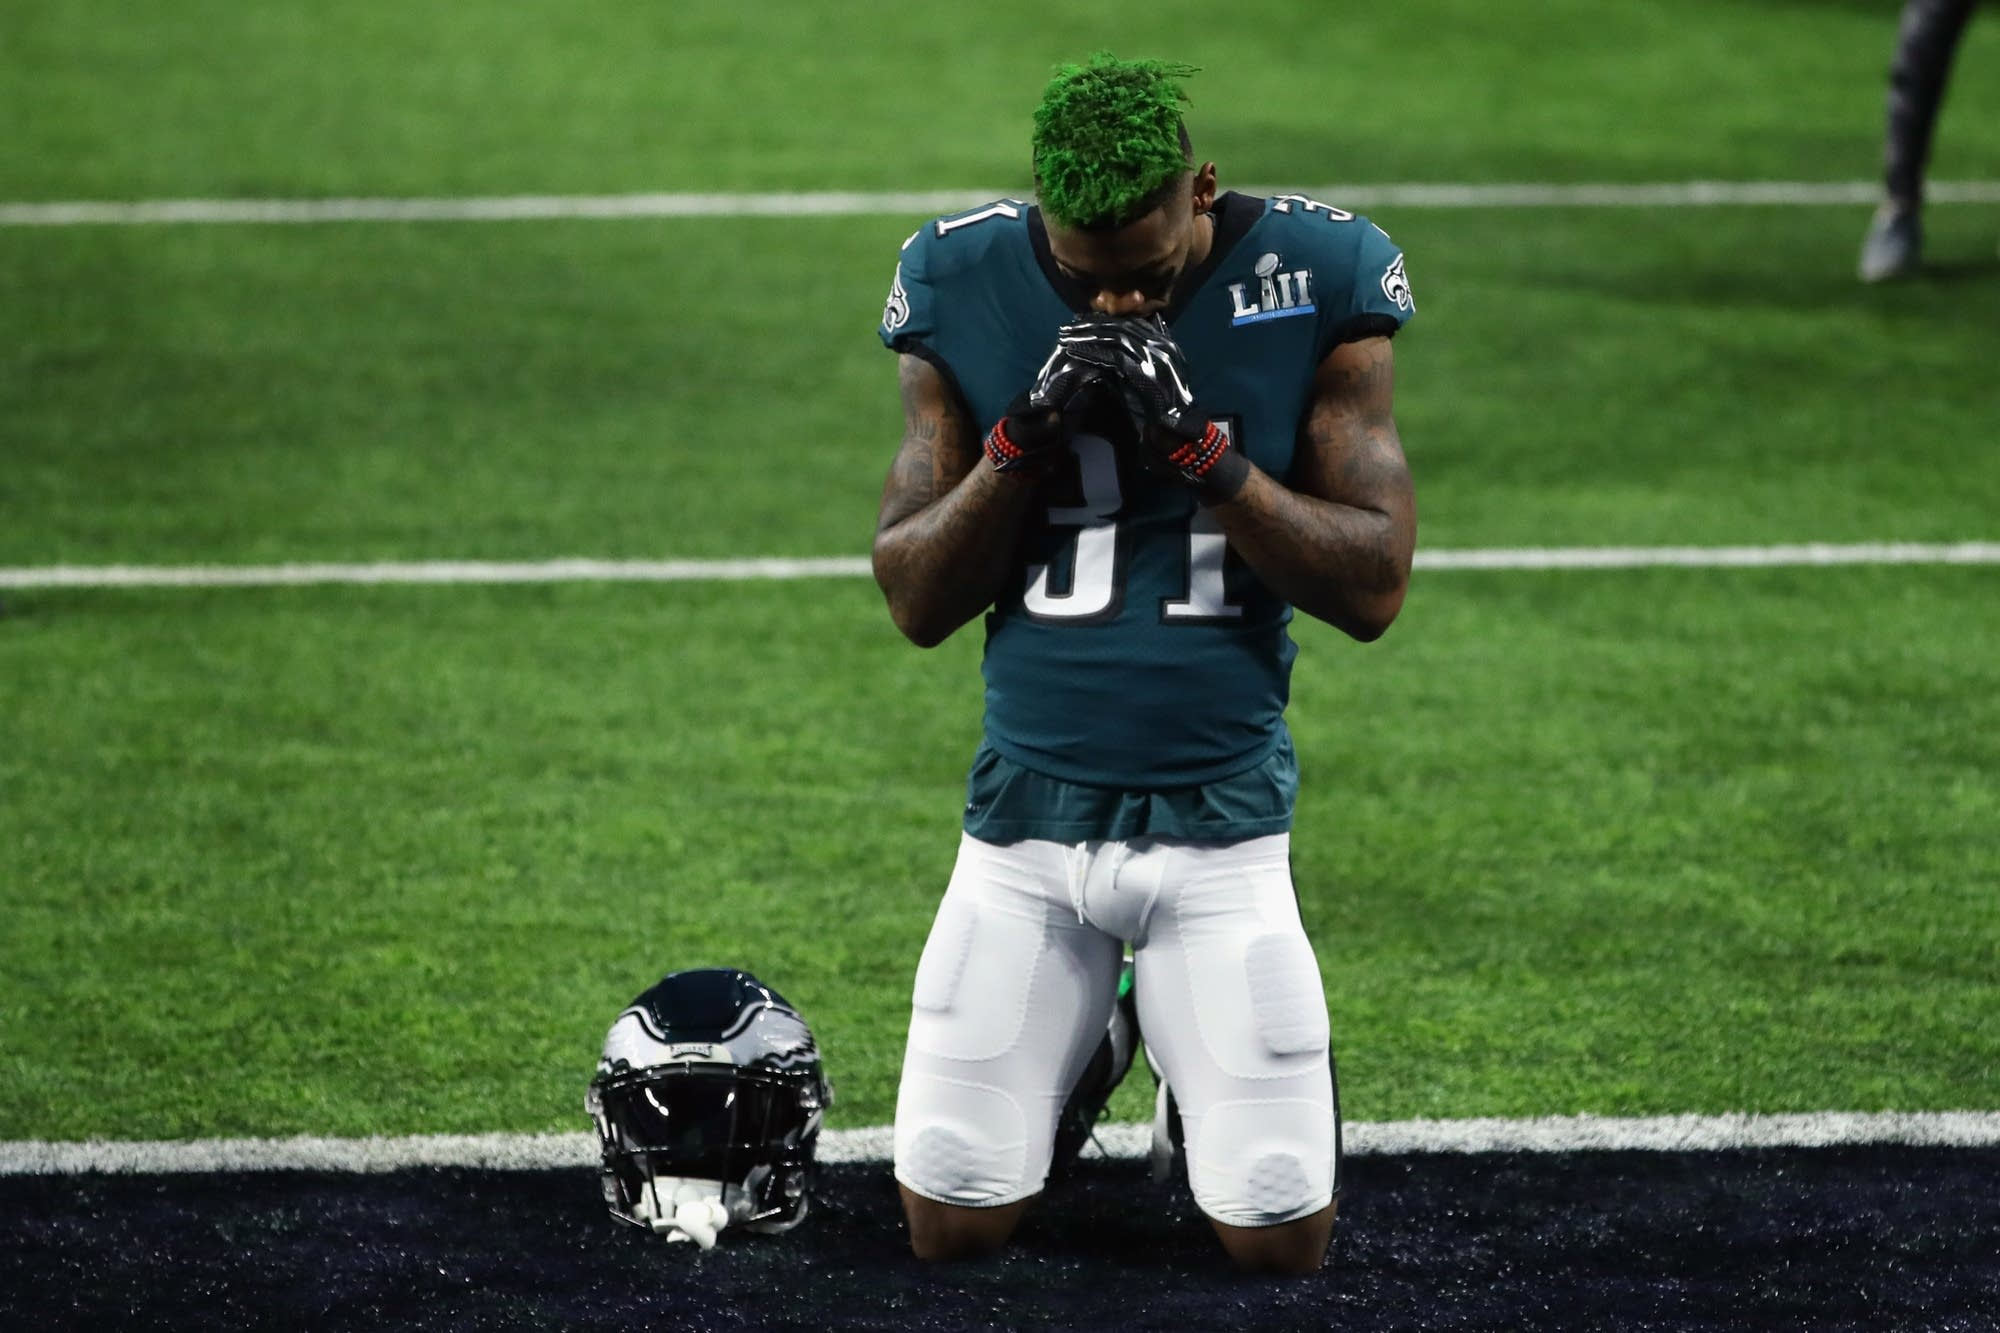 Jalen Mills (31) of the Philadelphia Eagles kneels on the field.